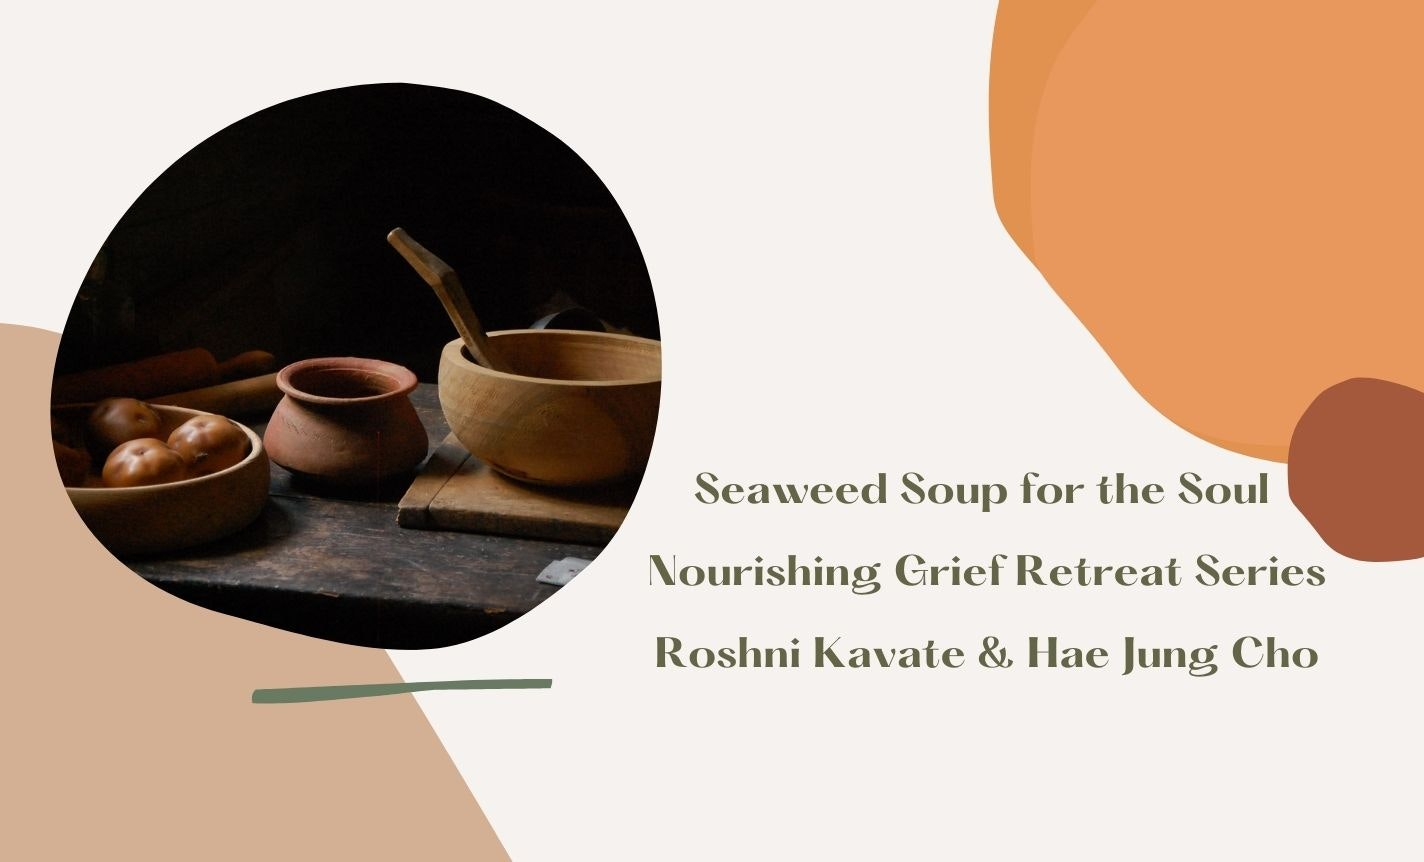 Seaweed Soup for the Soul: Recipes for Tending to your Heart